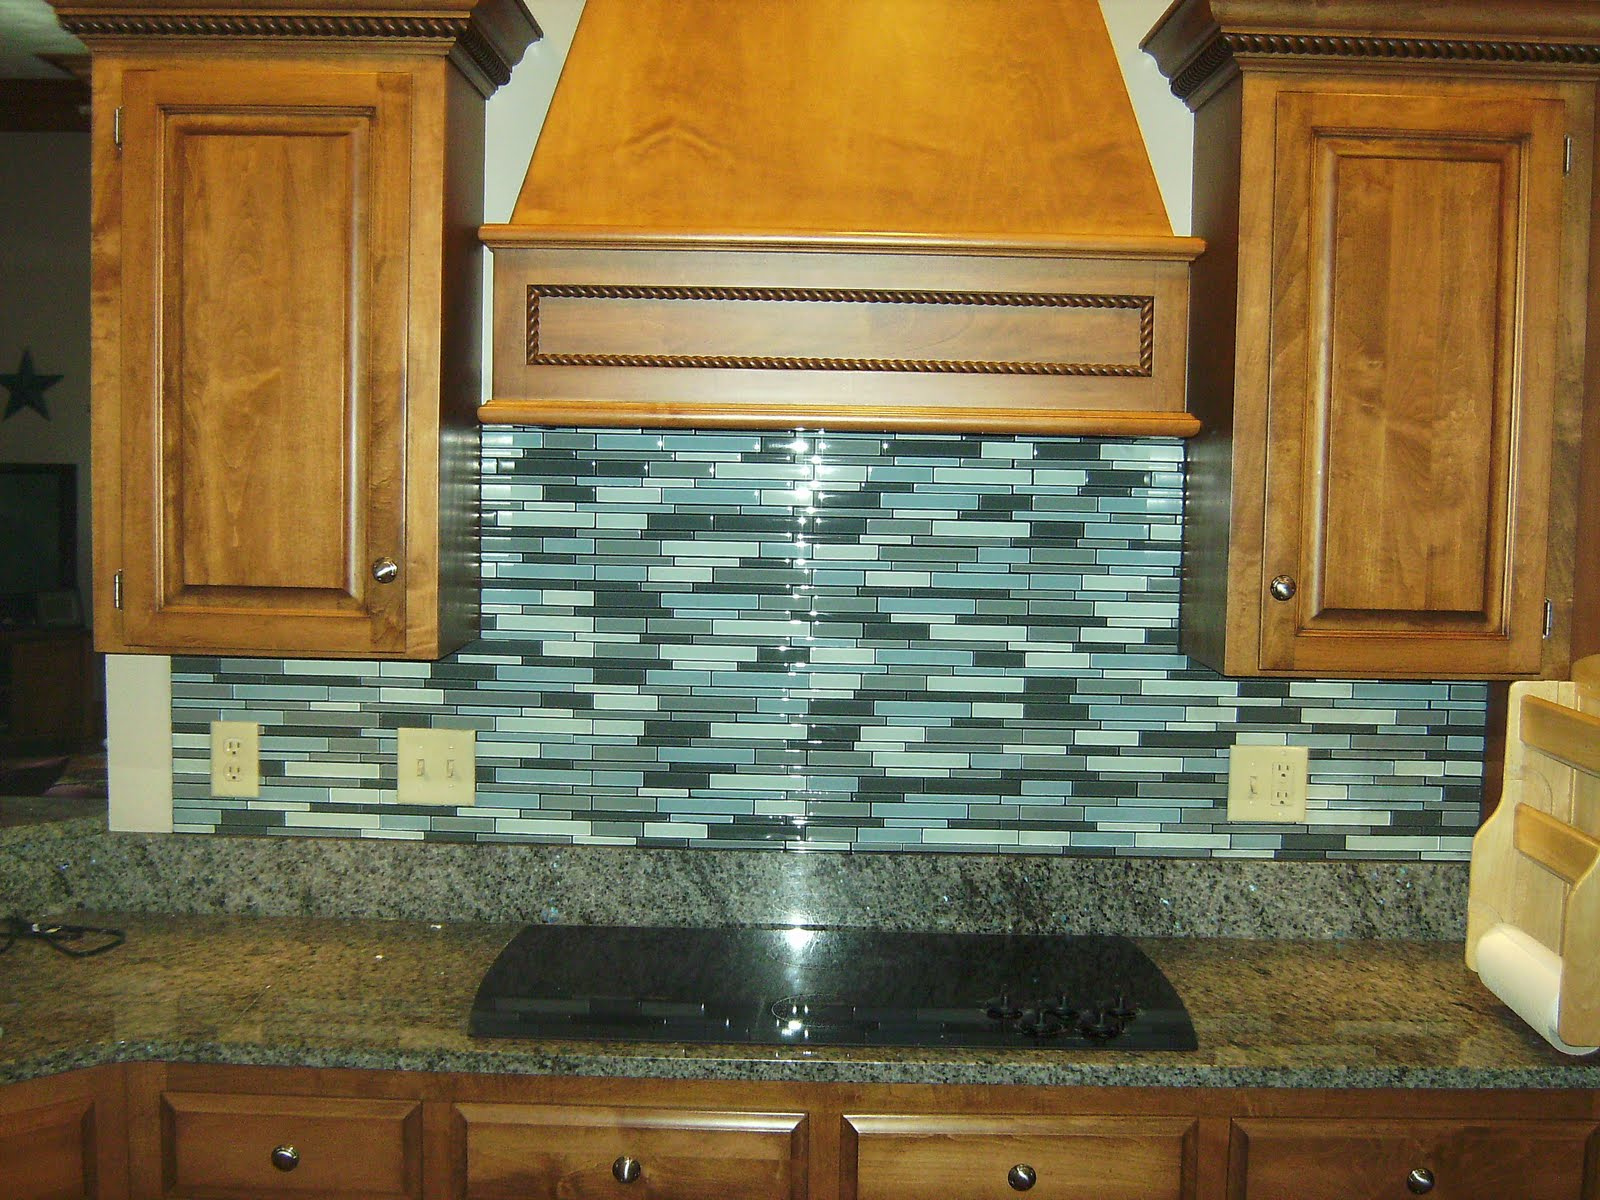 Glass mosaic tile kitchen backsplash ideas 28 images clear glass mosaic tile kitchen backsplash ideas knapp tile and flooring inc glass tile backsplash dailygadgetfo Image collections